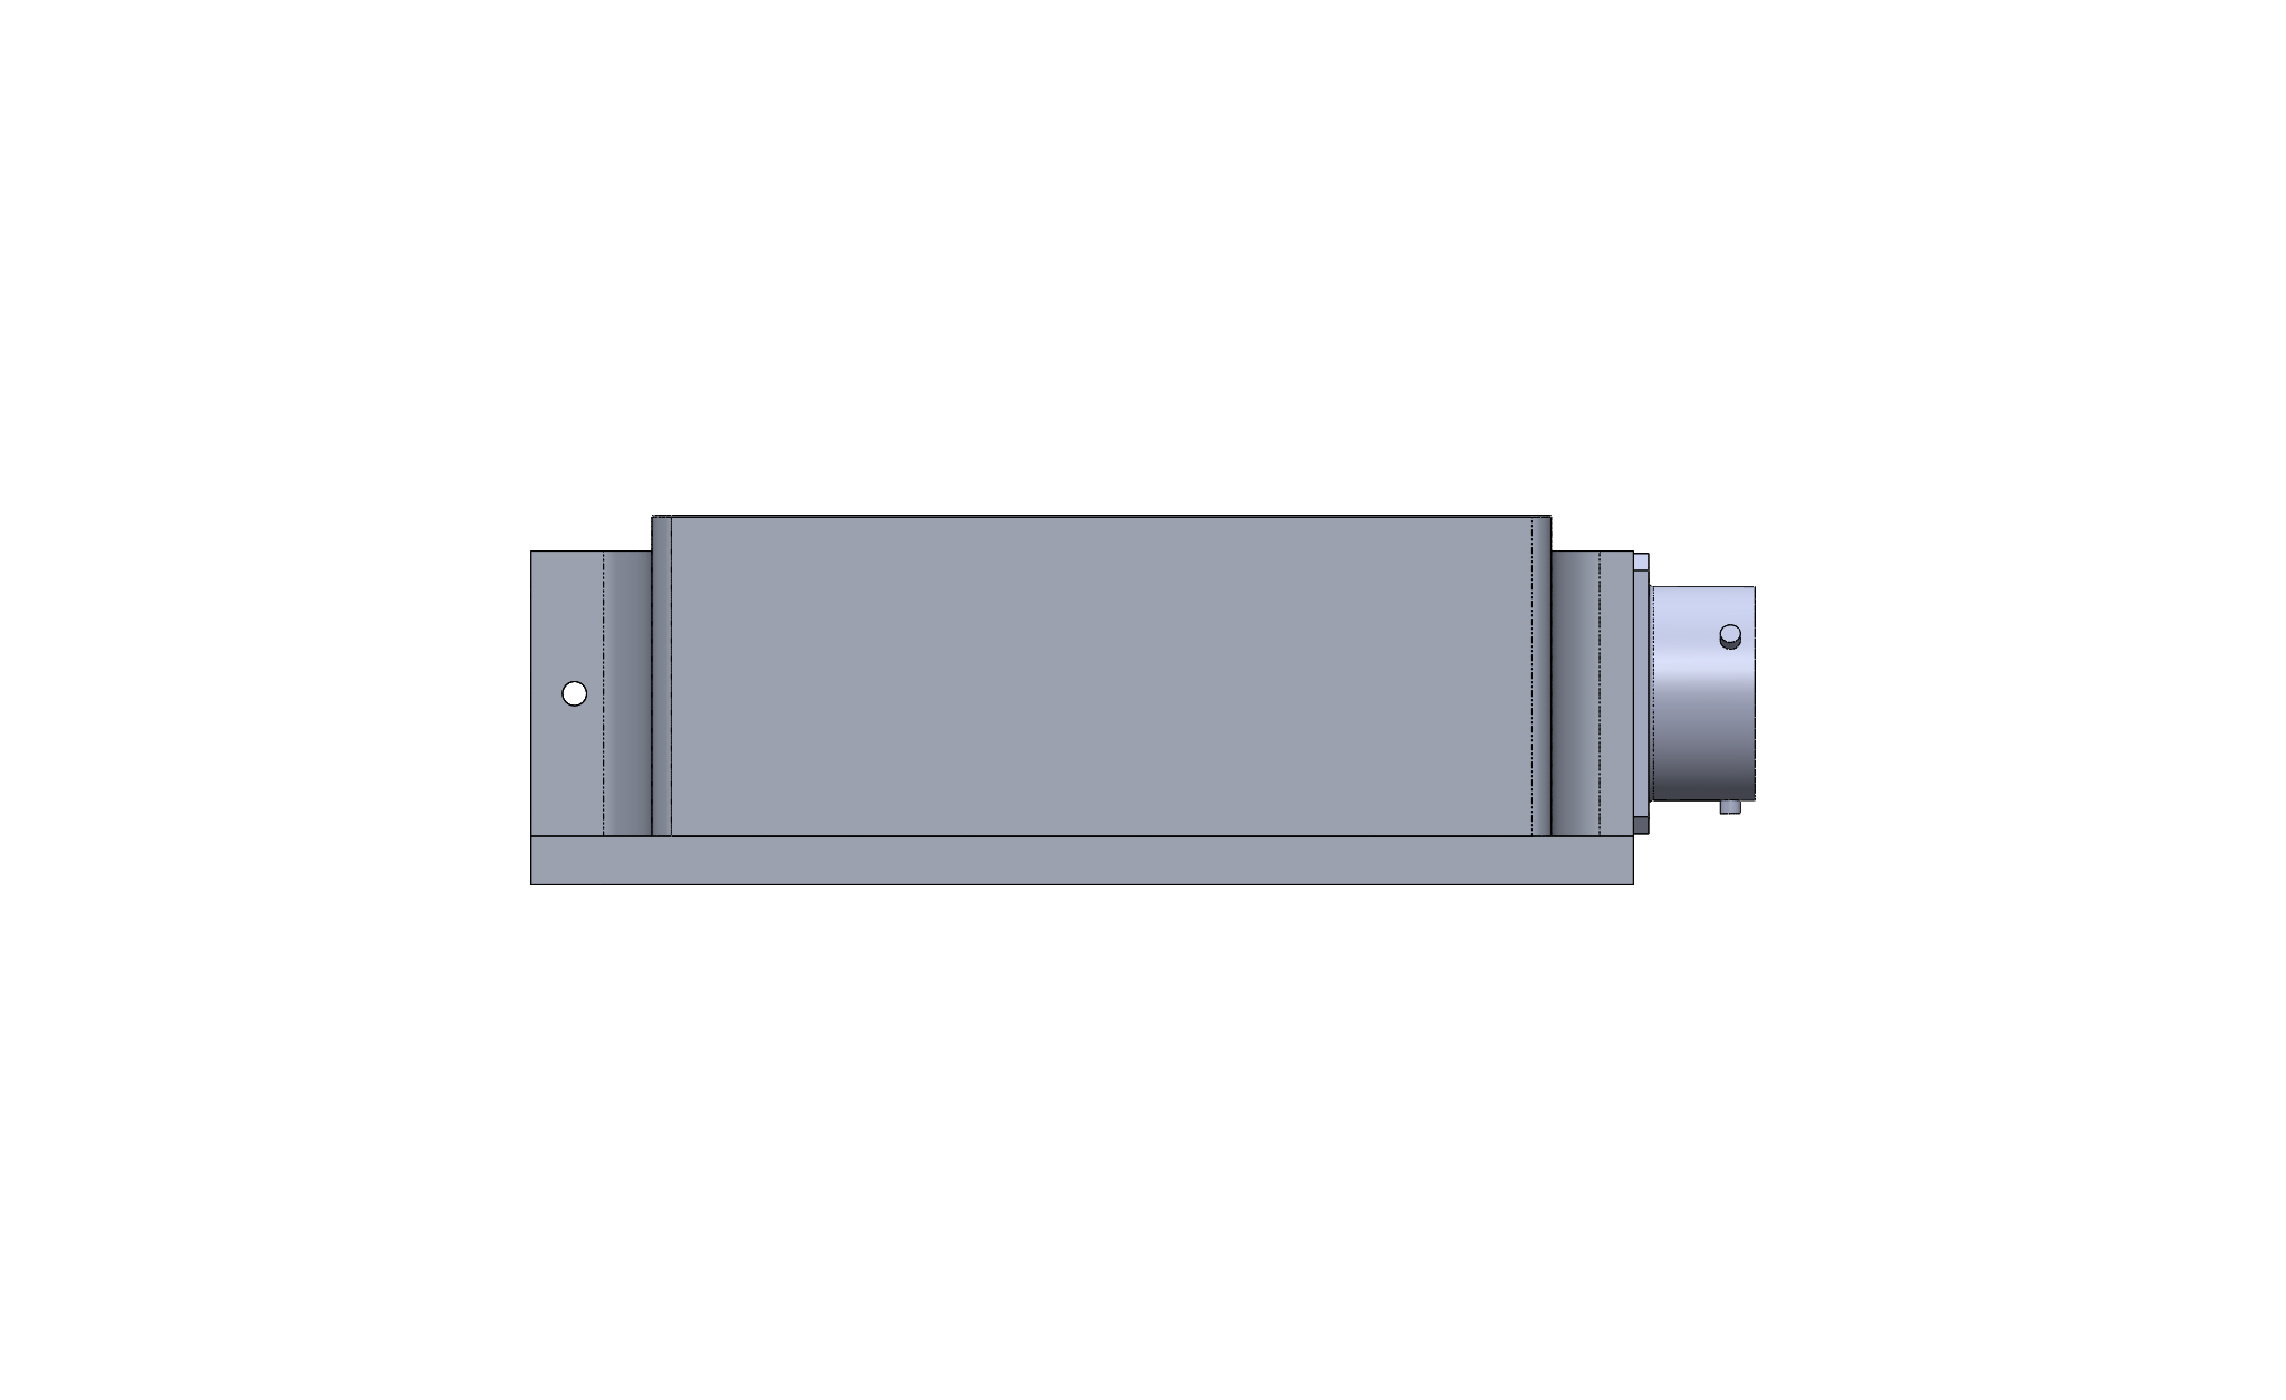 2.94 MirPac: Side View